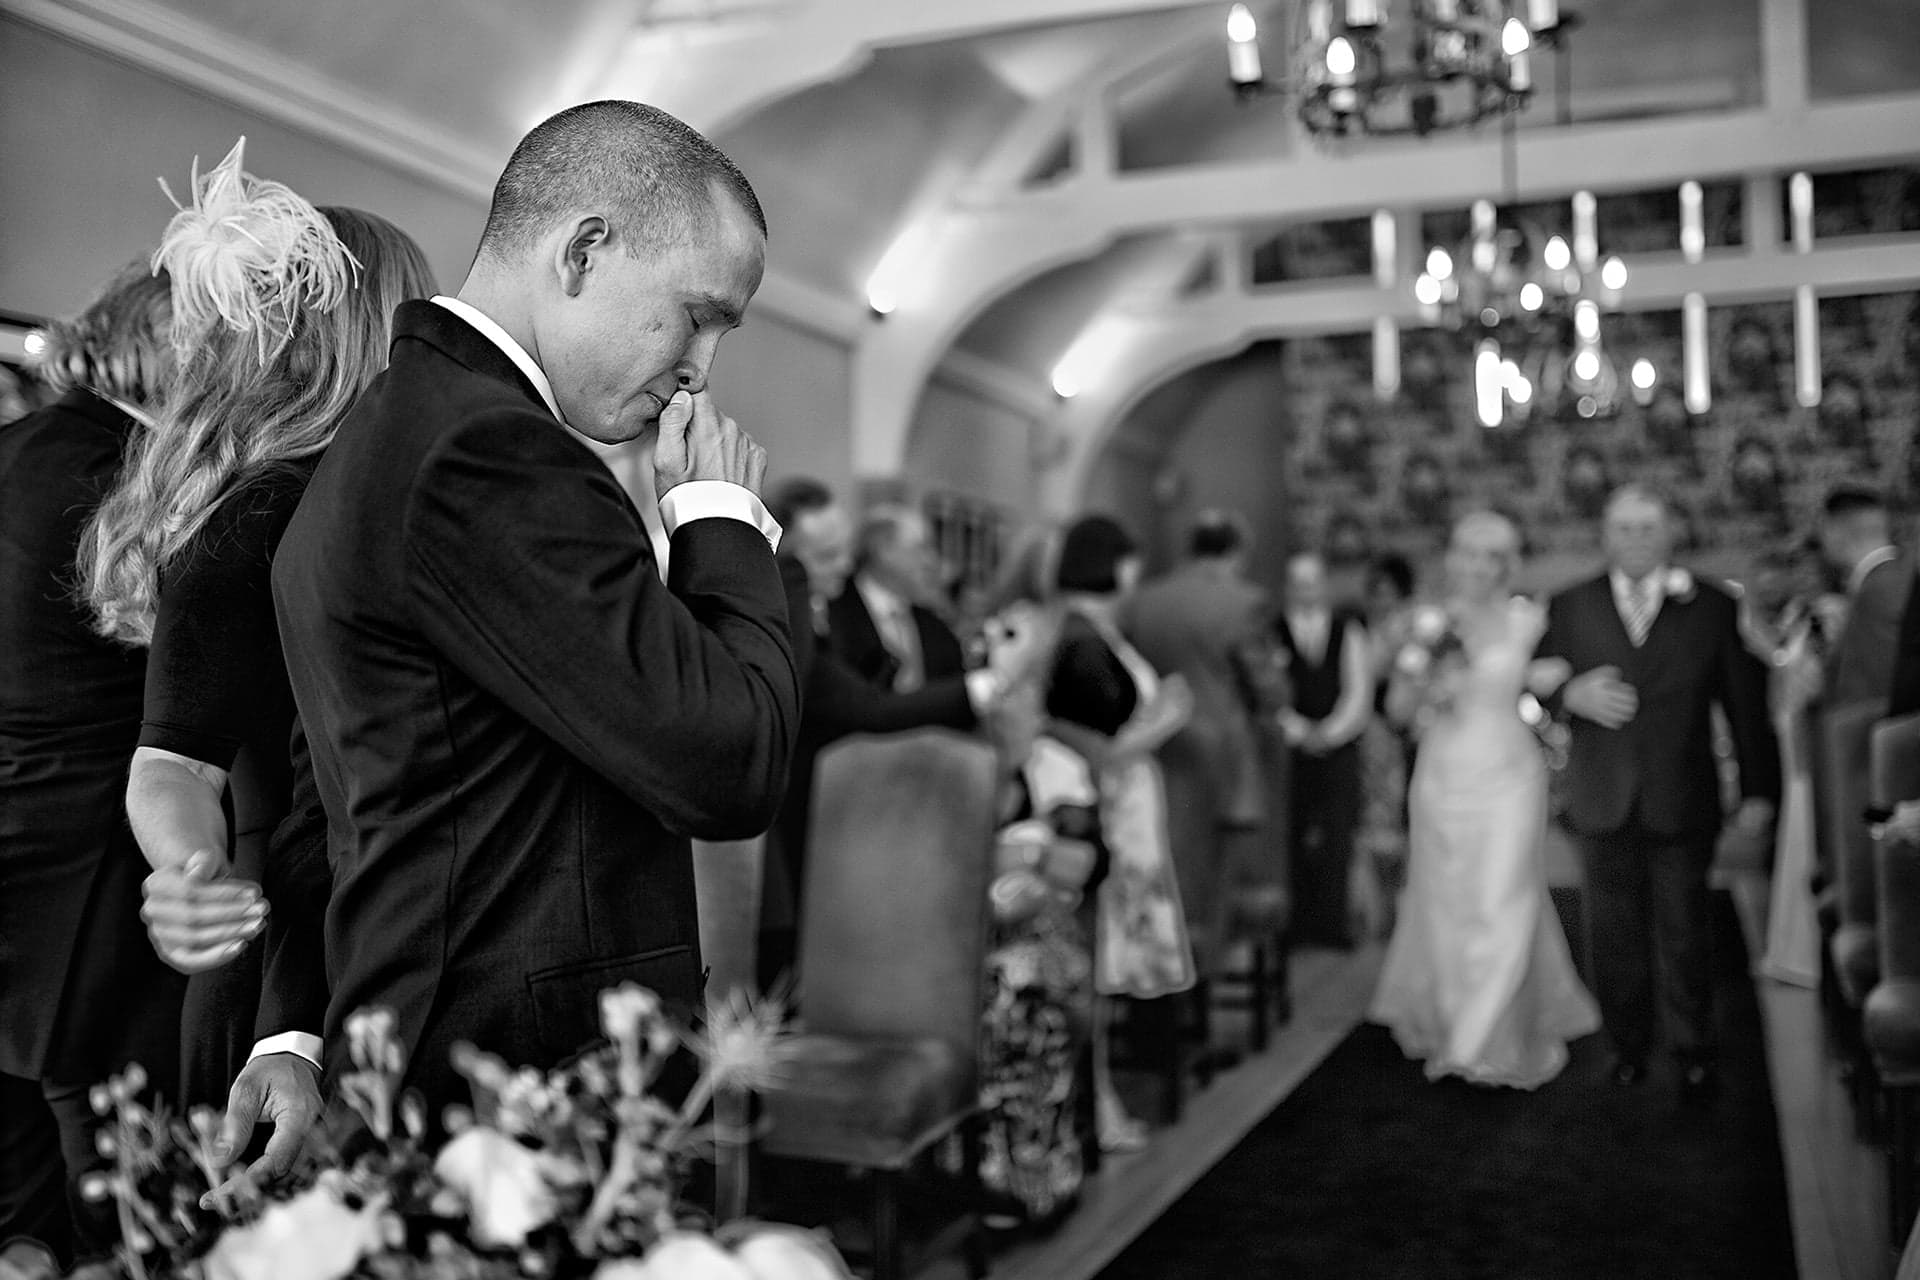 Fearless Photographers Award Winning Wedding Photograph - Matt the groom shortly before getting married as his fiancee walks up the aisle towards him, at the Hare & Hounds Hotel in Westonbirt